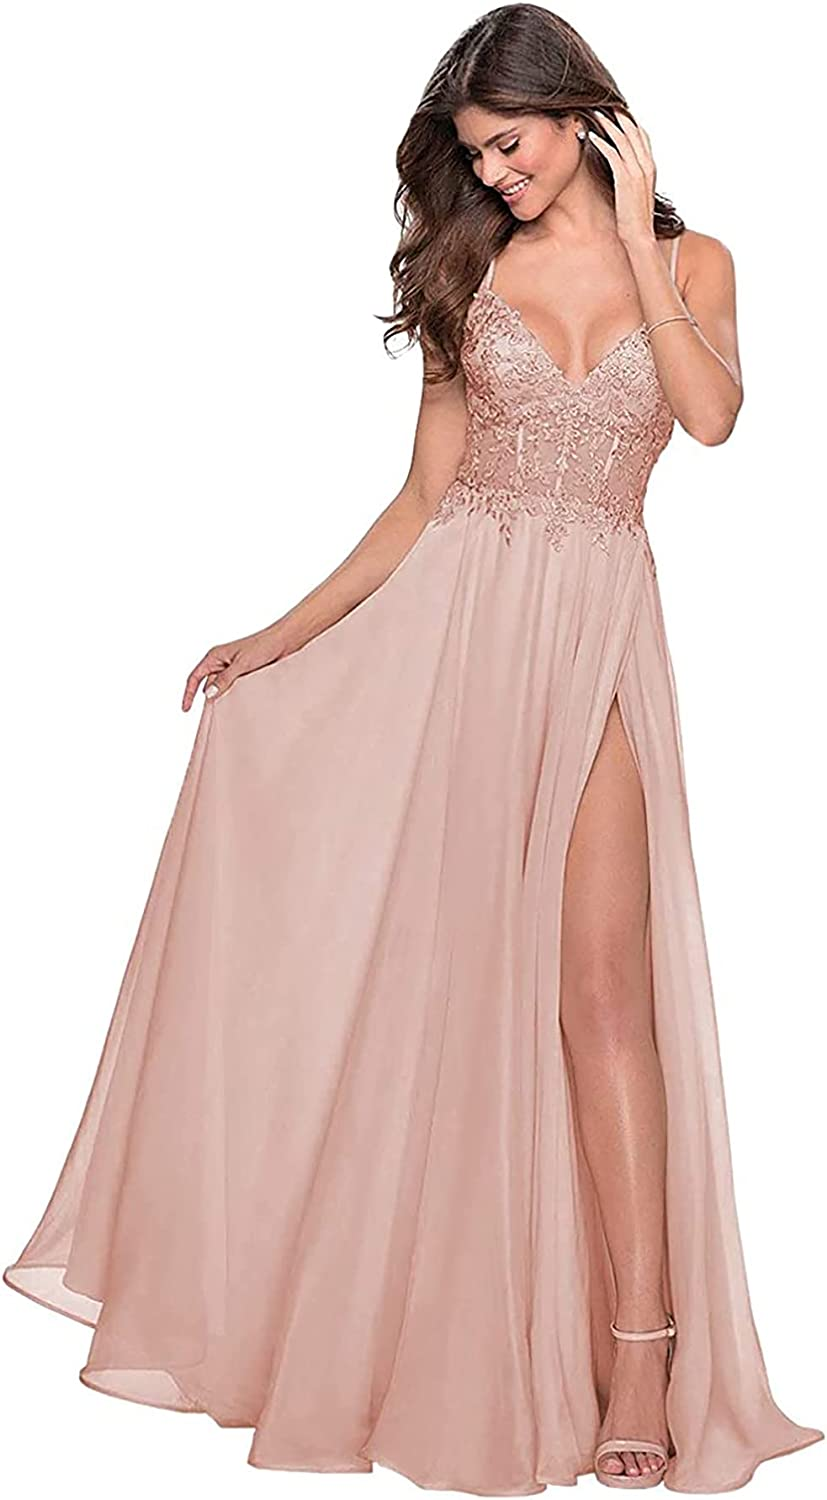 Women's Prom Dresses Long with Slit A Line Formal Evening Gowns Lace V Neck Wedding Party Bridesmaid Dress